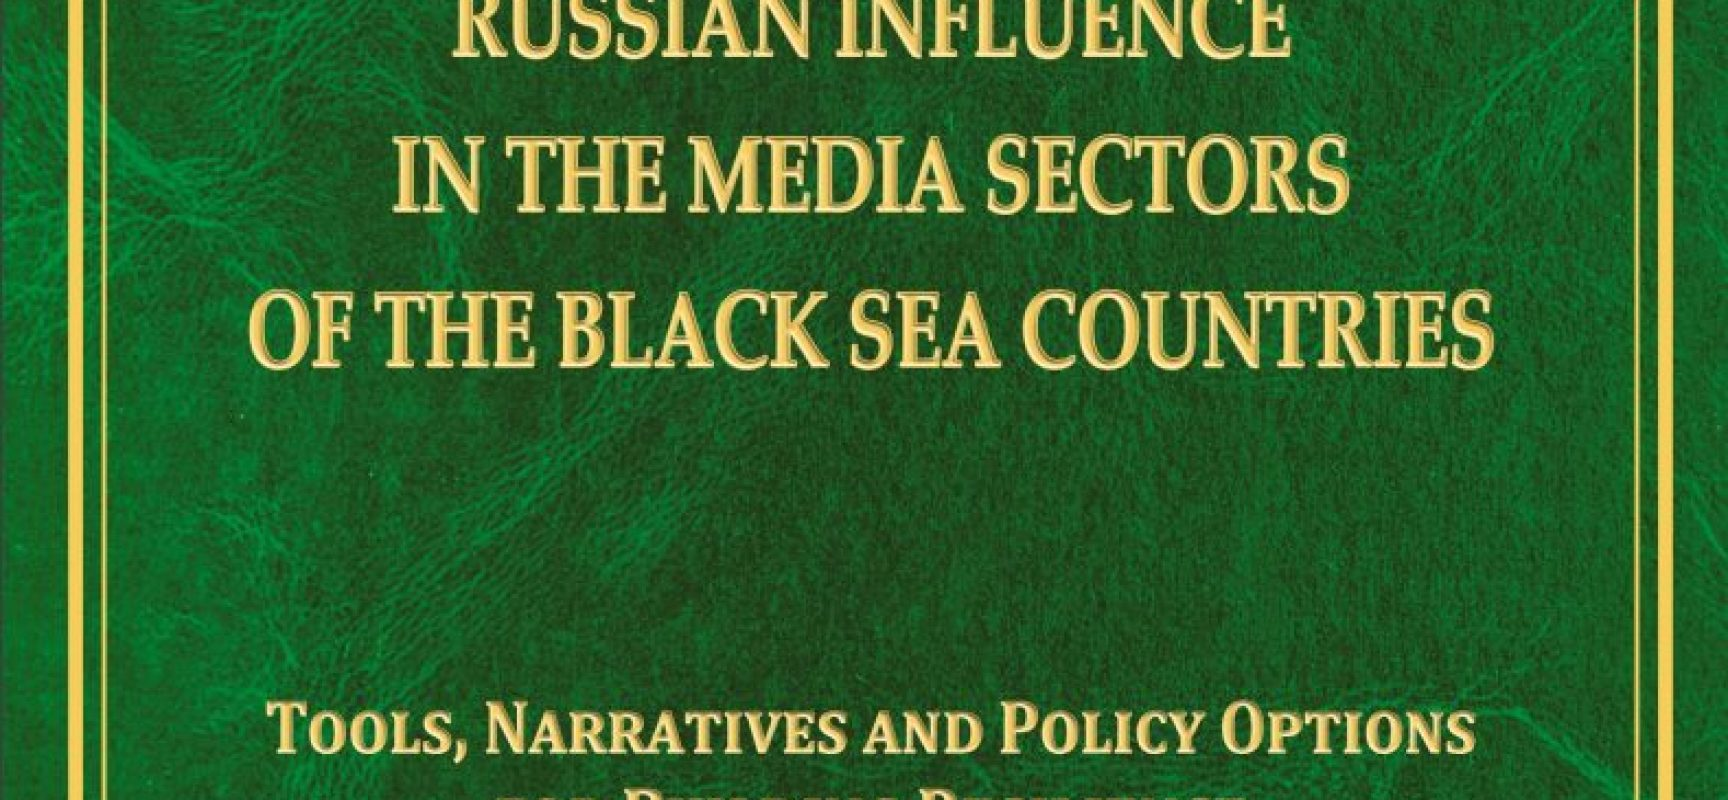 Russian influence in the media sectors of the Black Sea countries